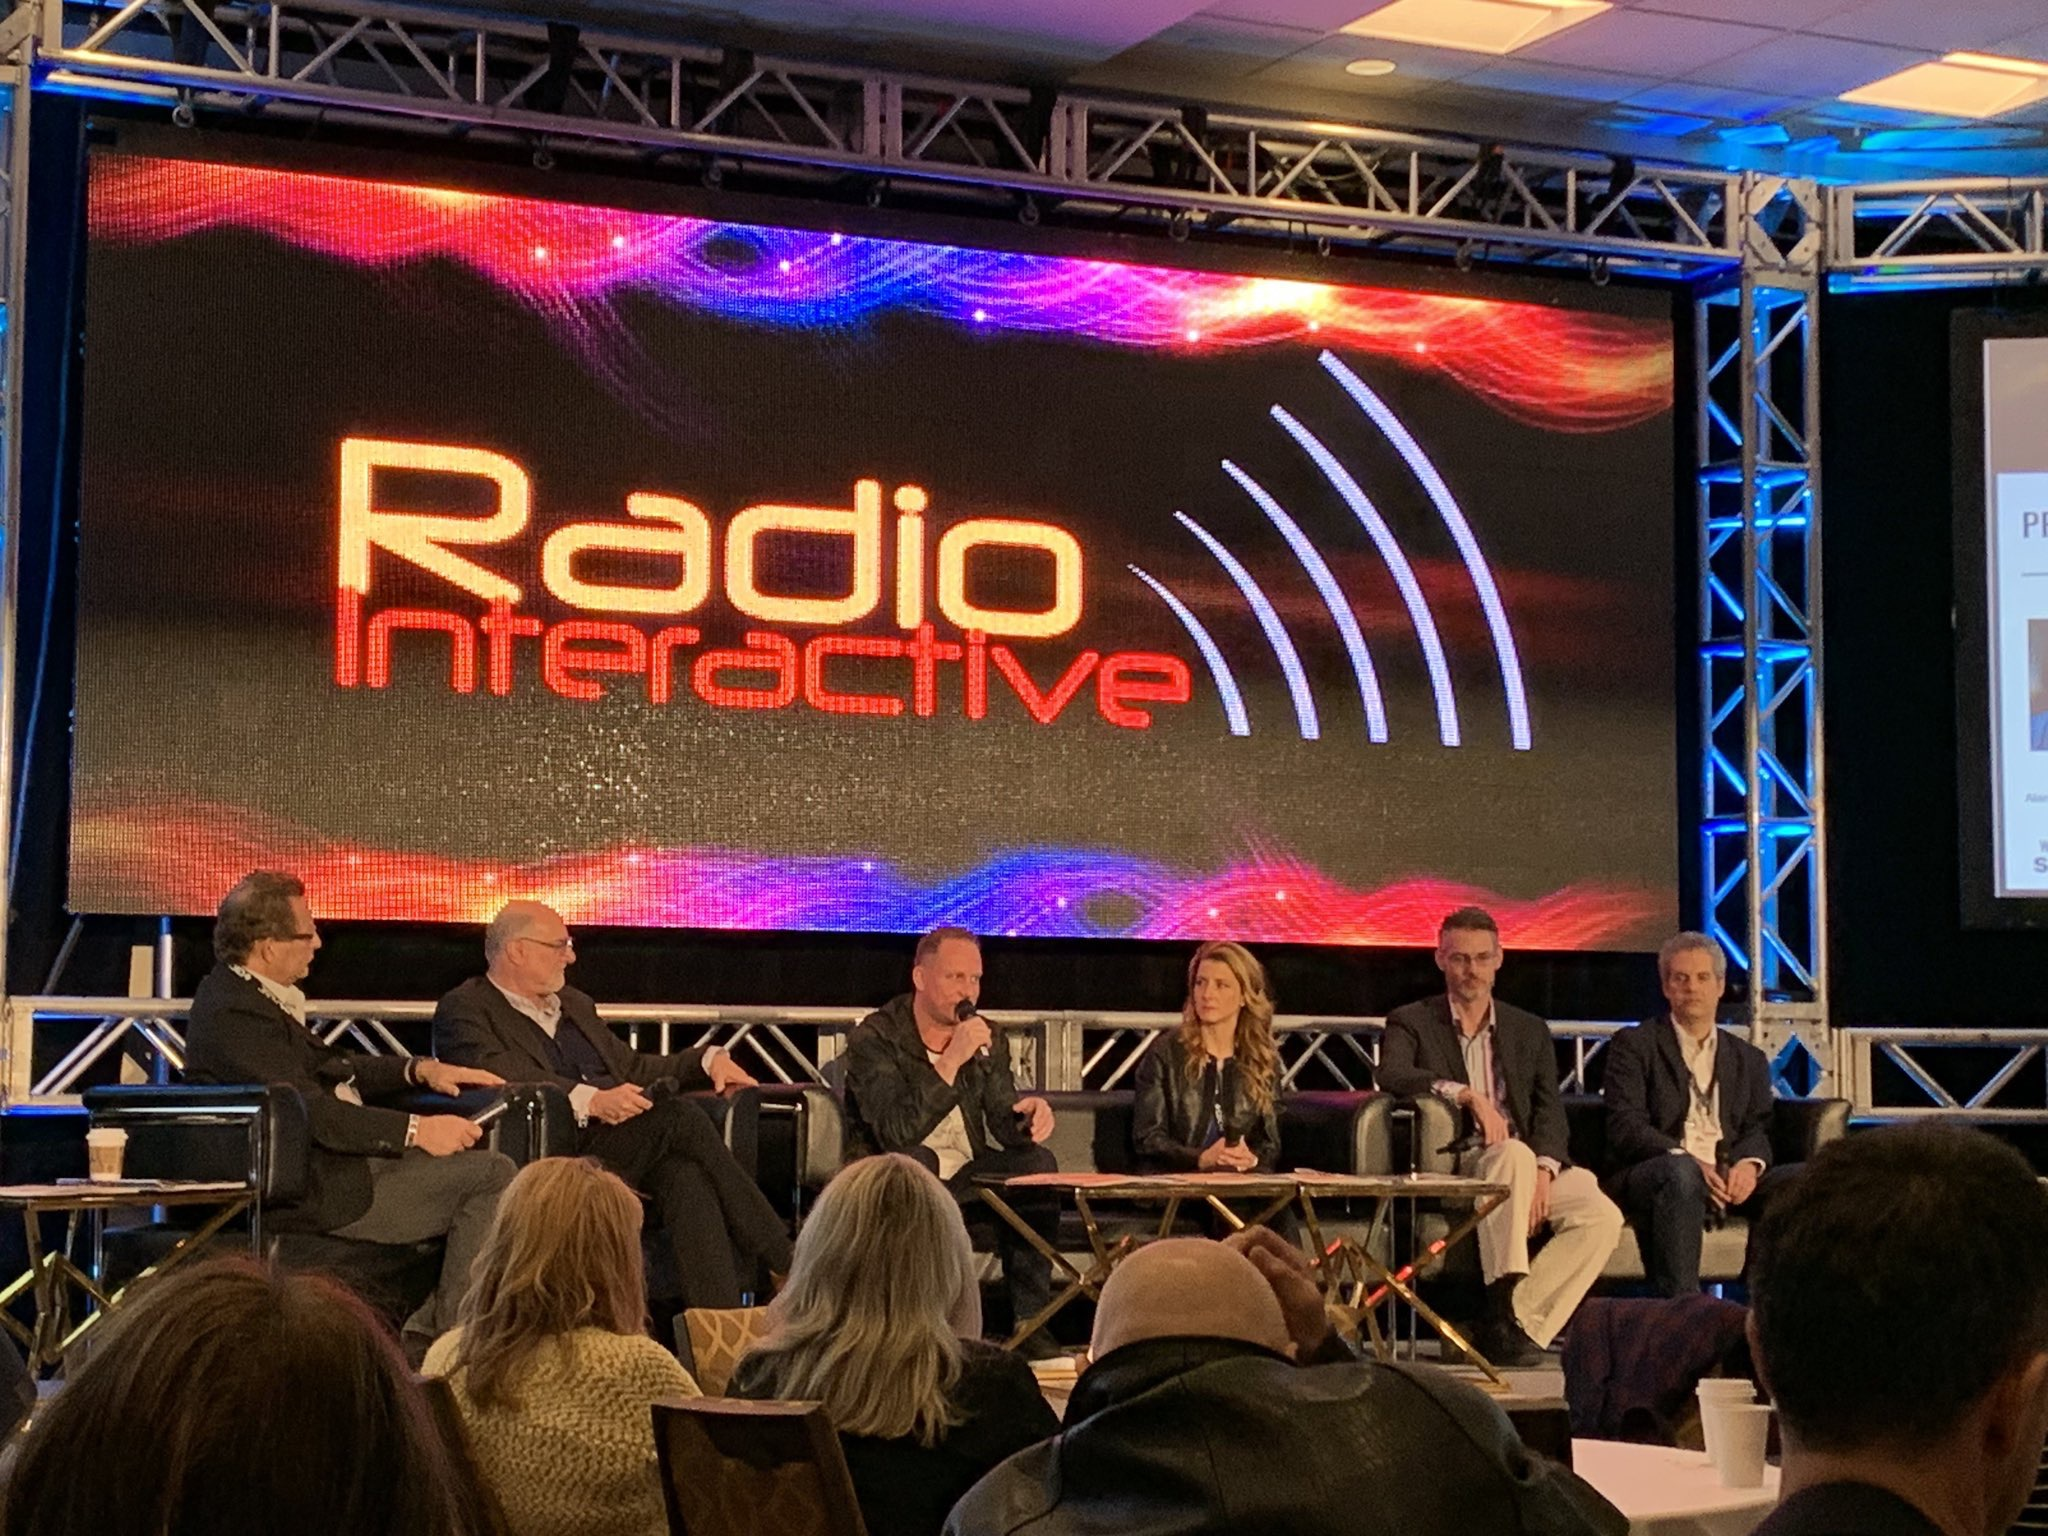 Alan Cross (Brain Dead Dog Productions), Steve Goldstein, Jeff Leake (Sirius/XM), Barbara Escoto (Bell Media), James Cridland (Podnews.net), Jeff Ulster (The Pod Exchange)